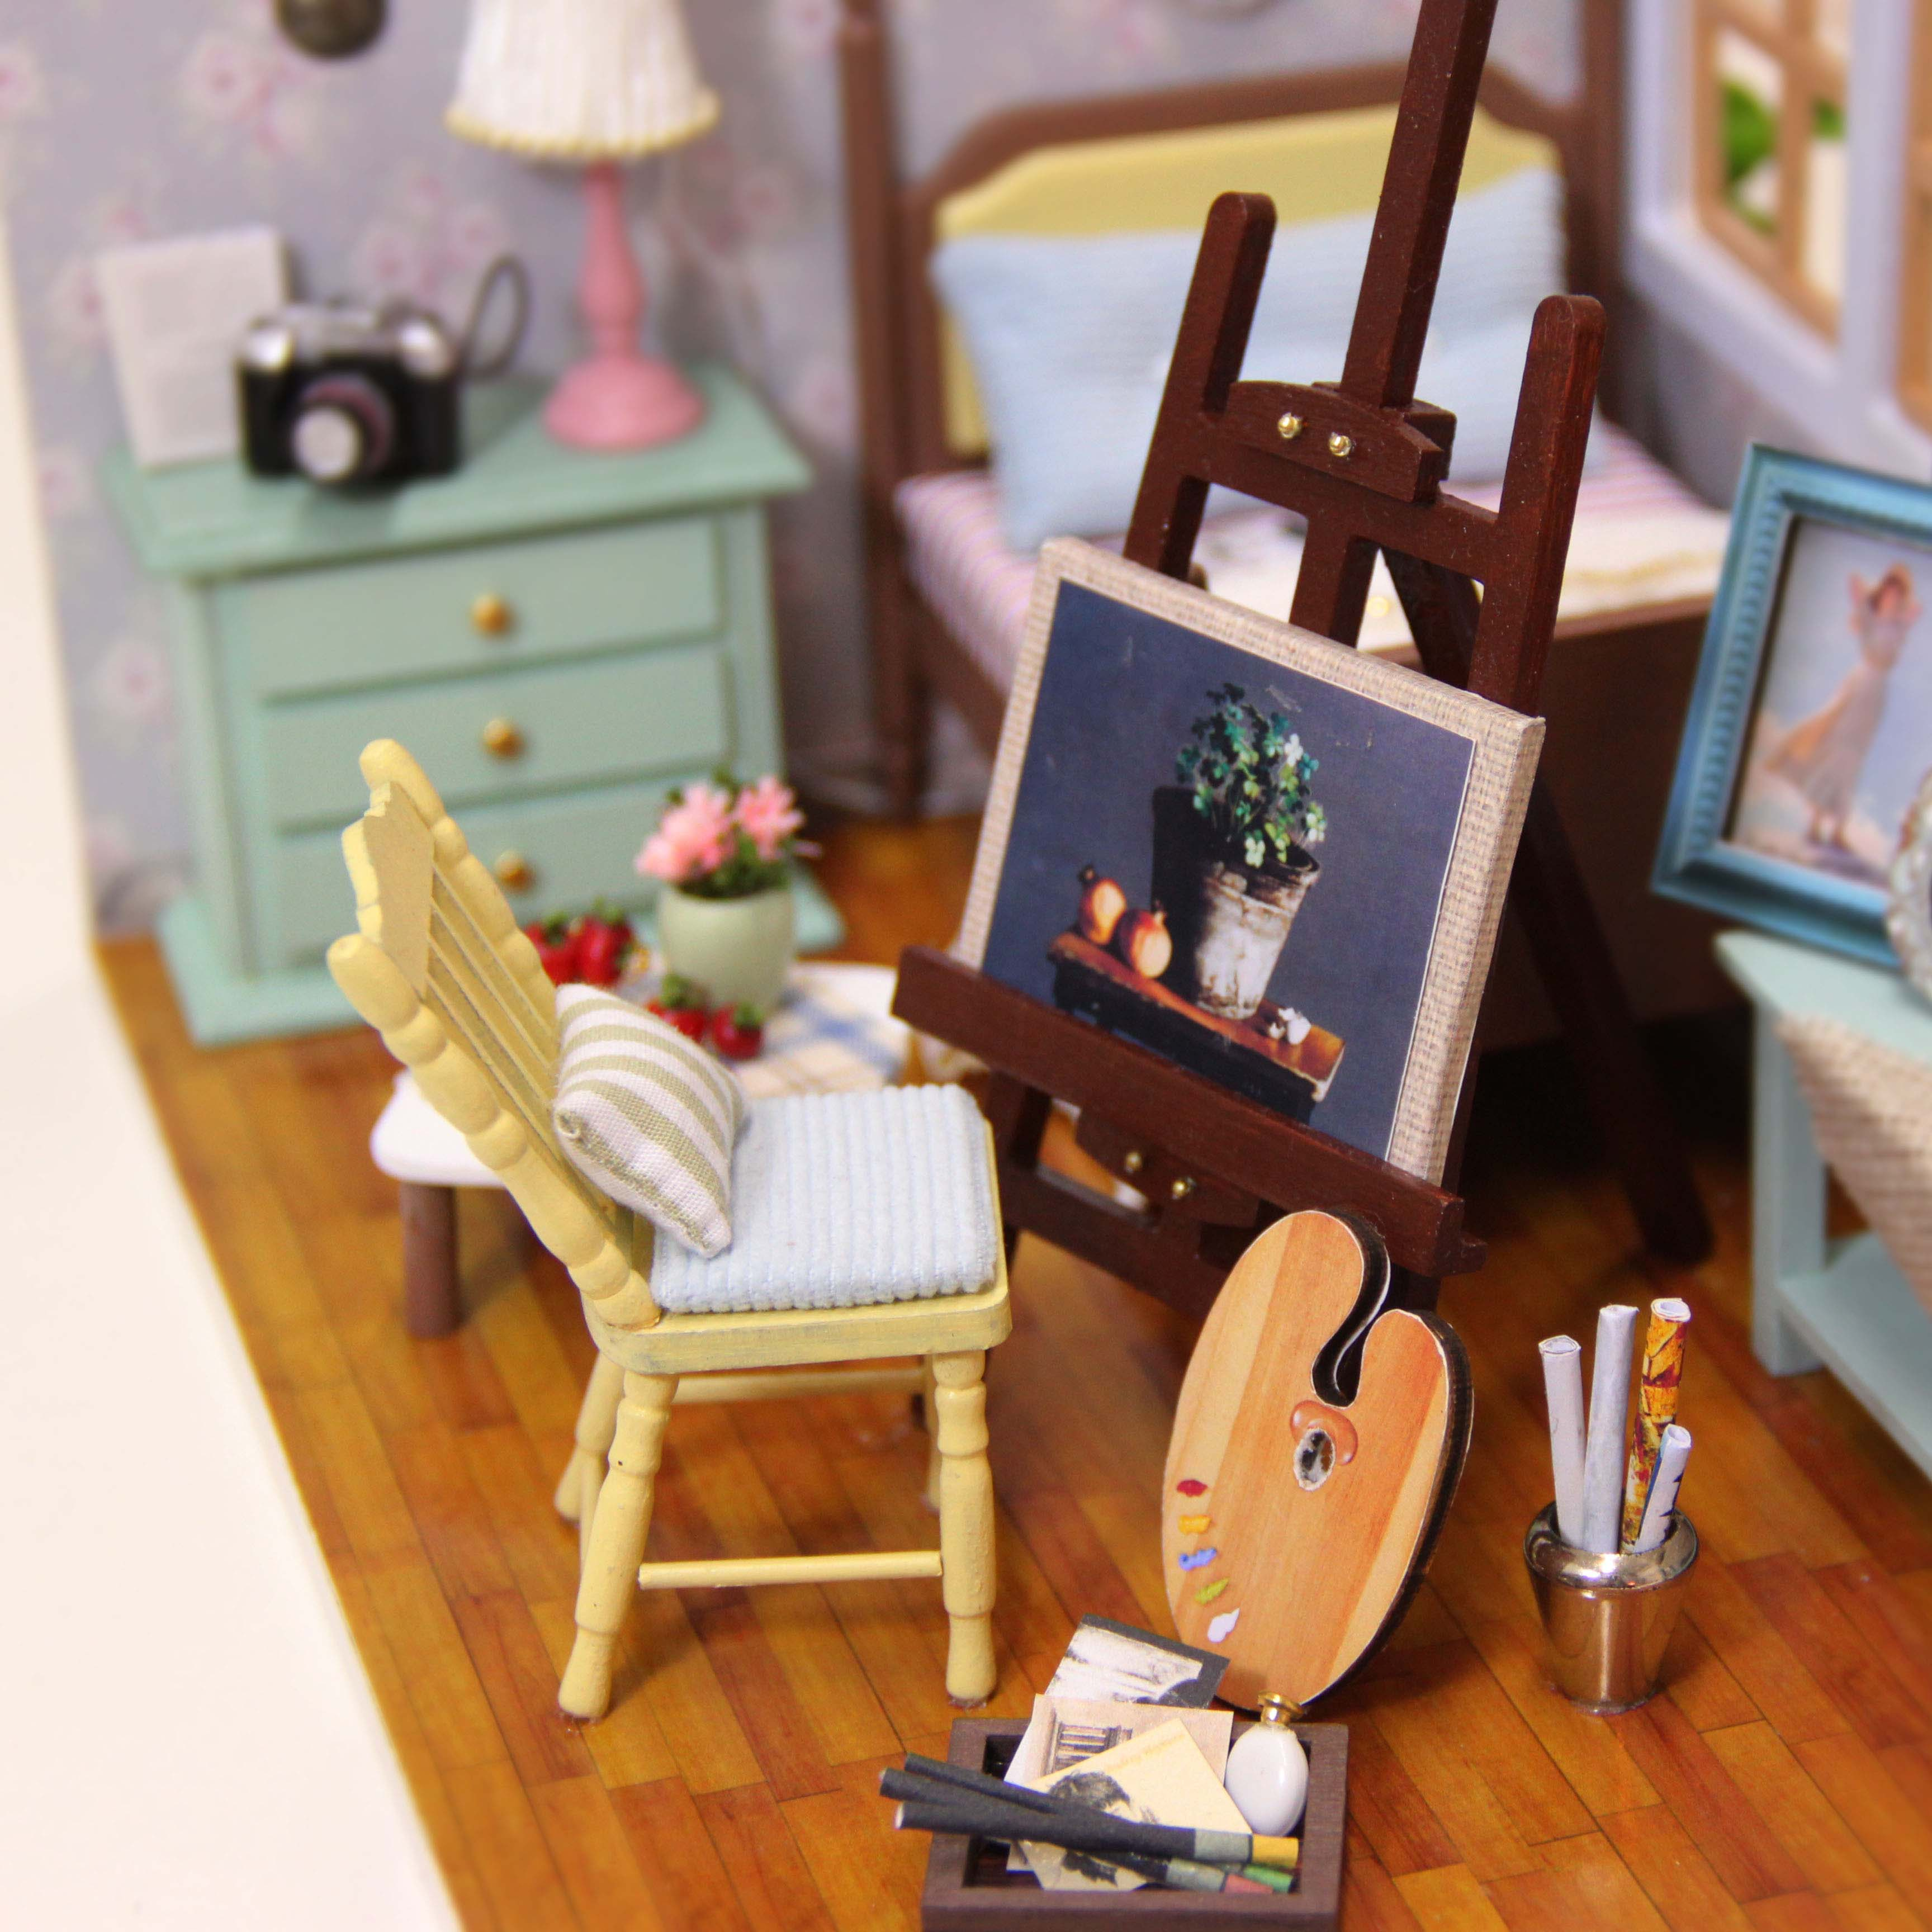 Cuteroom Diy Doll House Miniature Wooden Handmade Model Building Kits Birthday Gift Beautiful time